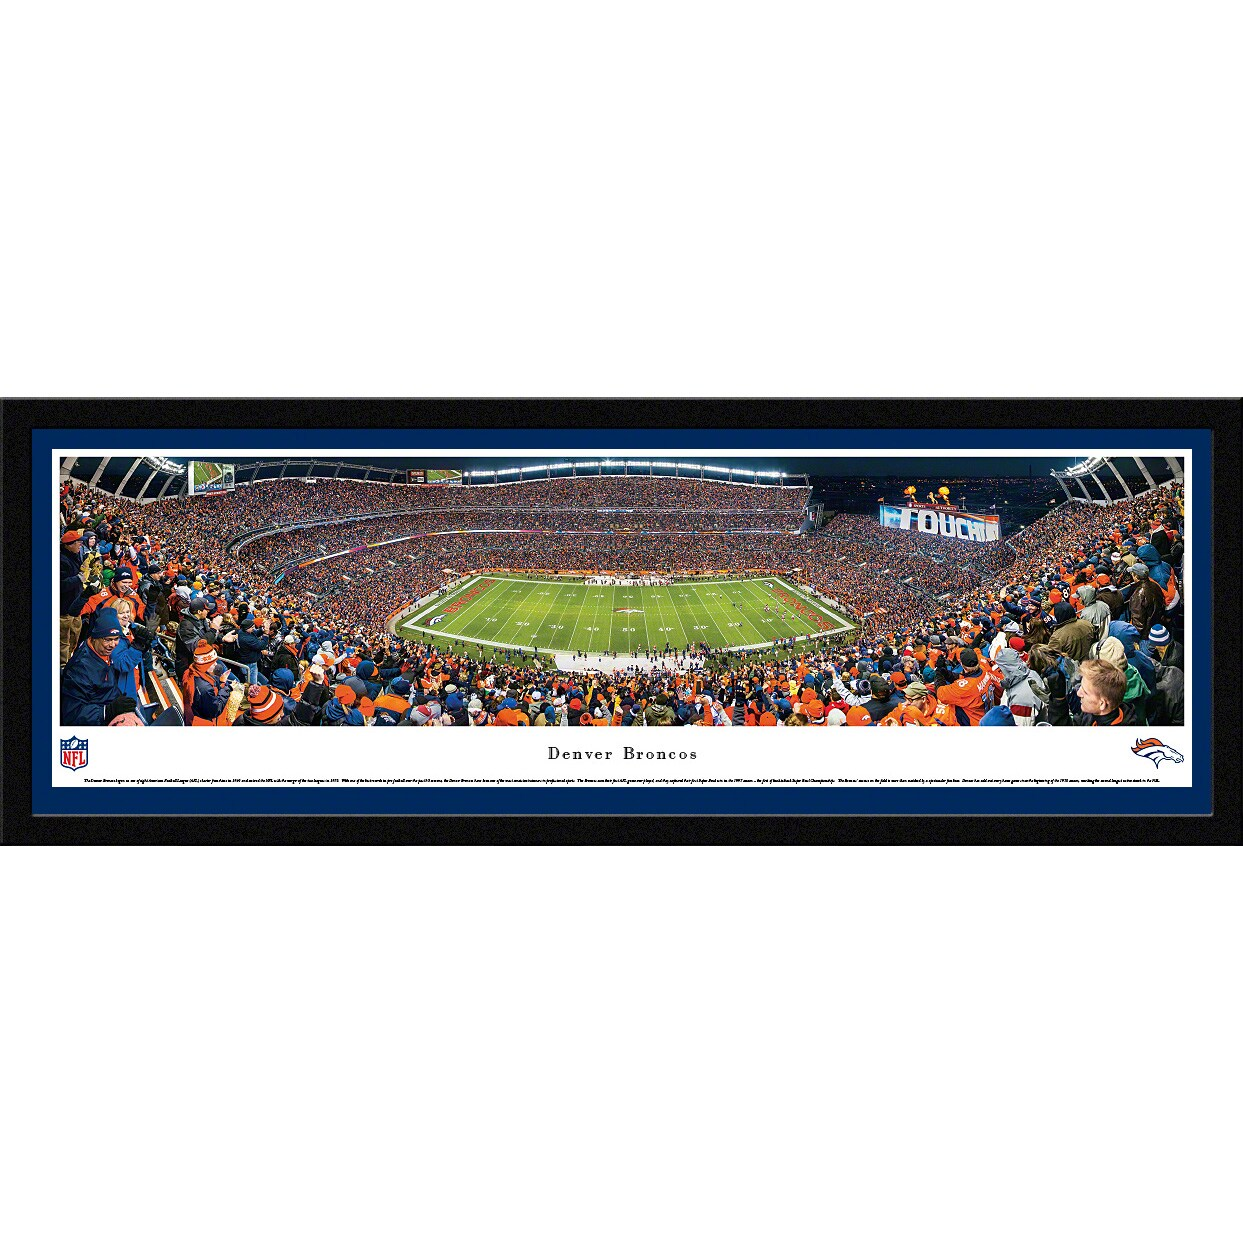 "Denver Broncos 16"" x 42"" Night Select Frame Stadium Panoramic Photo"